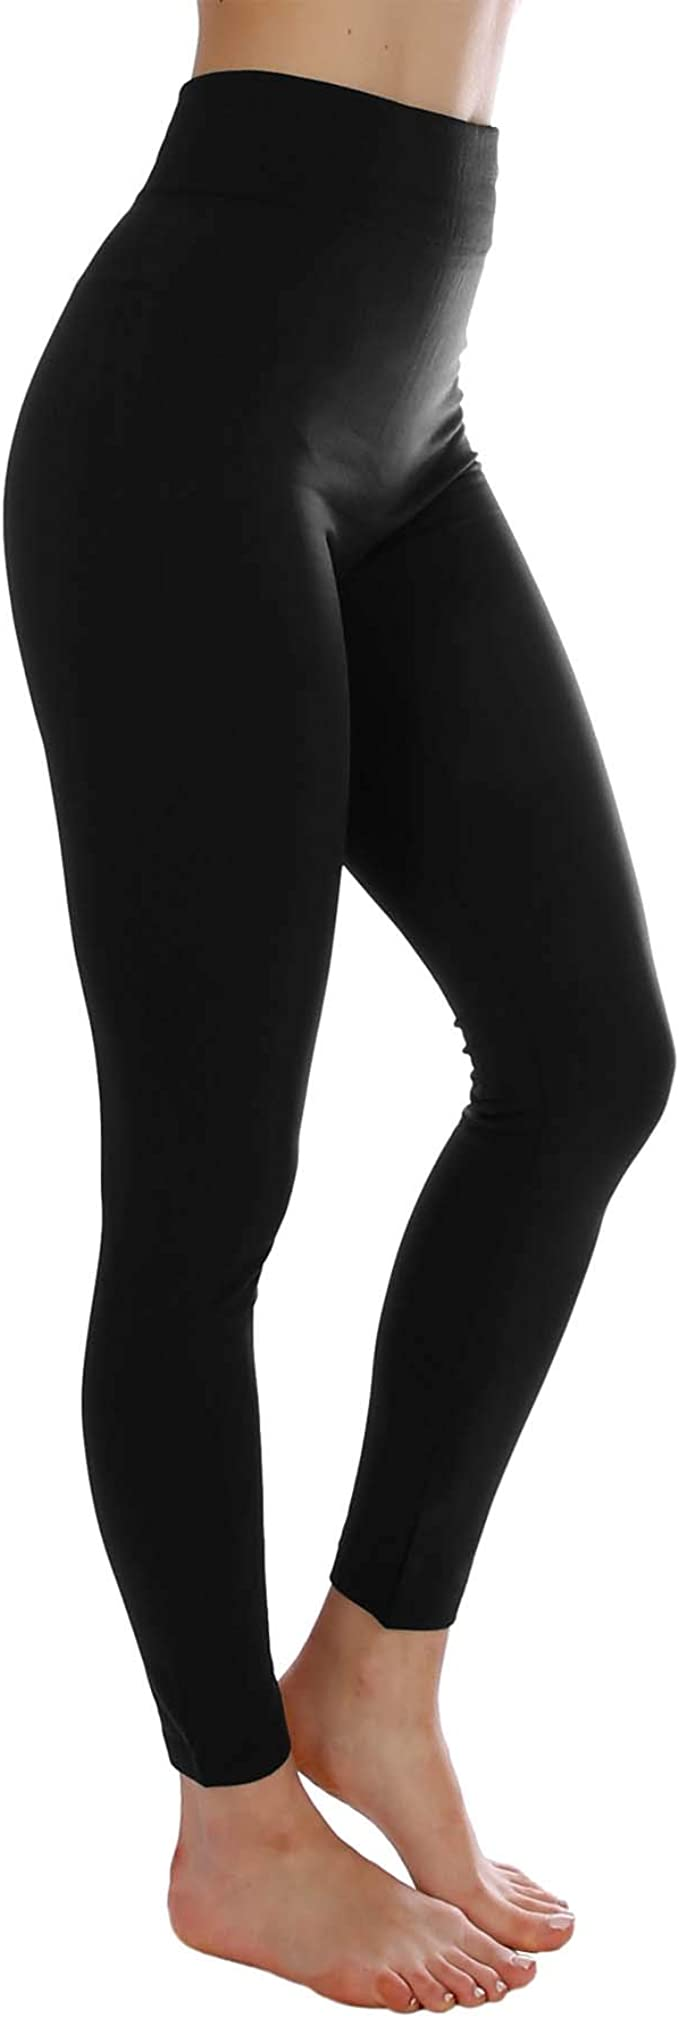 Ladies Women Winter Fleece Lined Warm Stretchy Thick Full Length Footless Tights